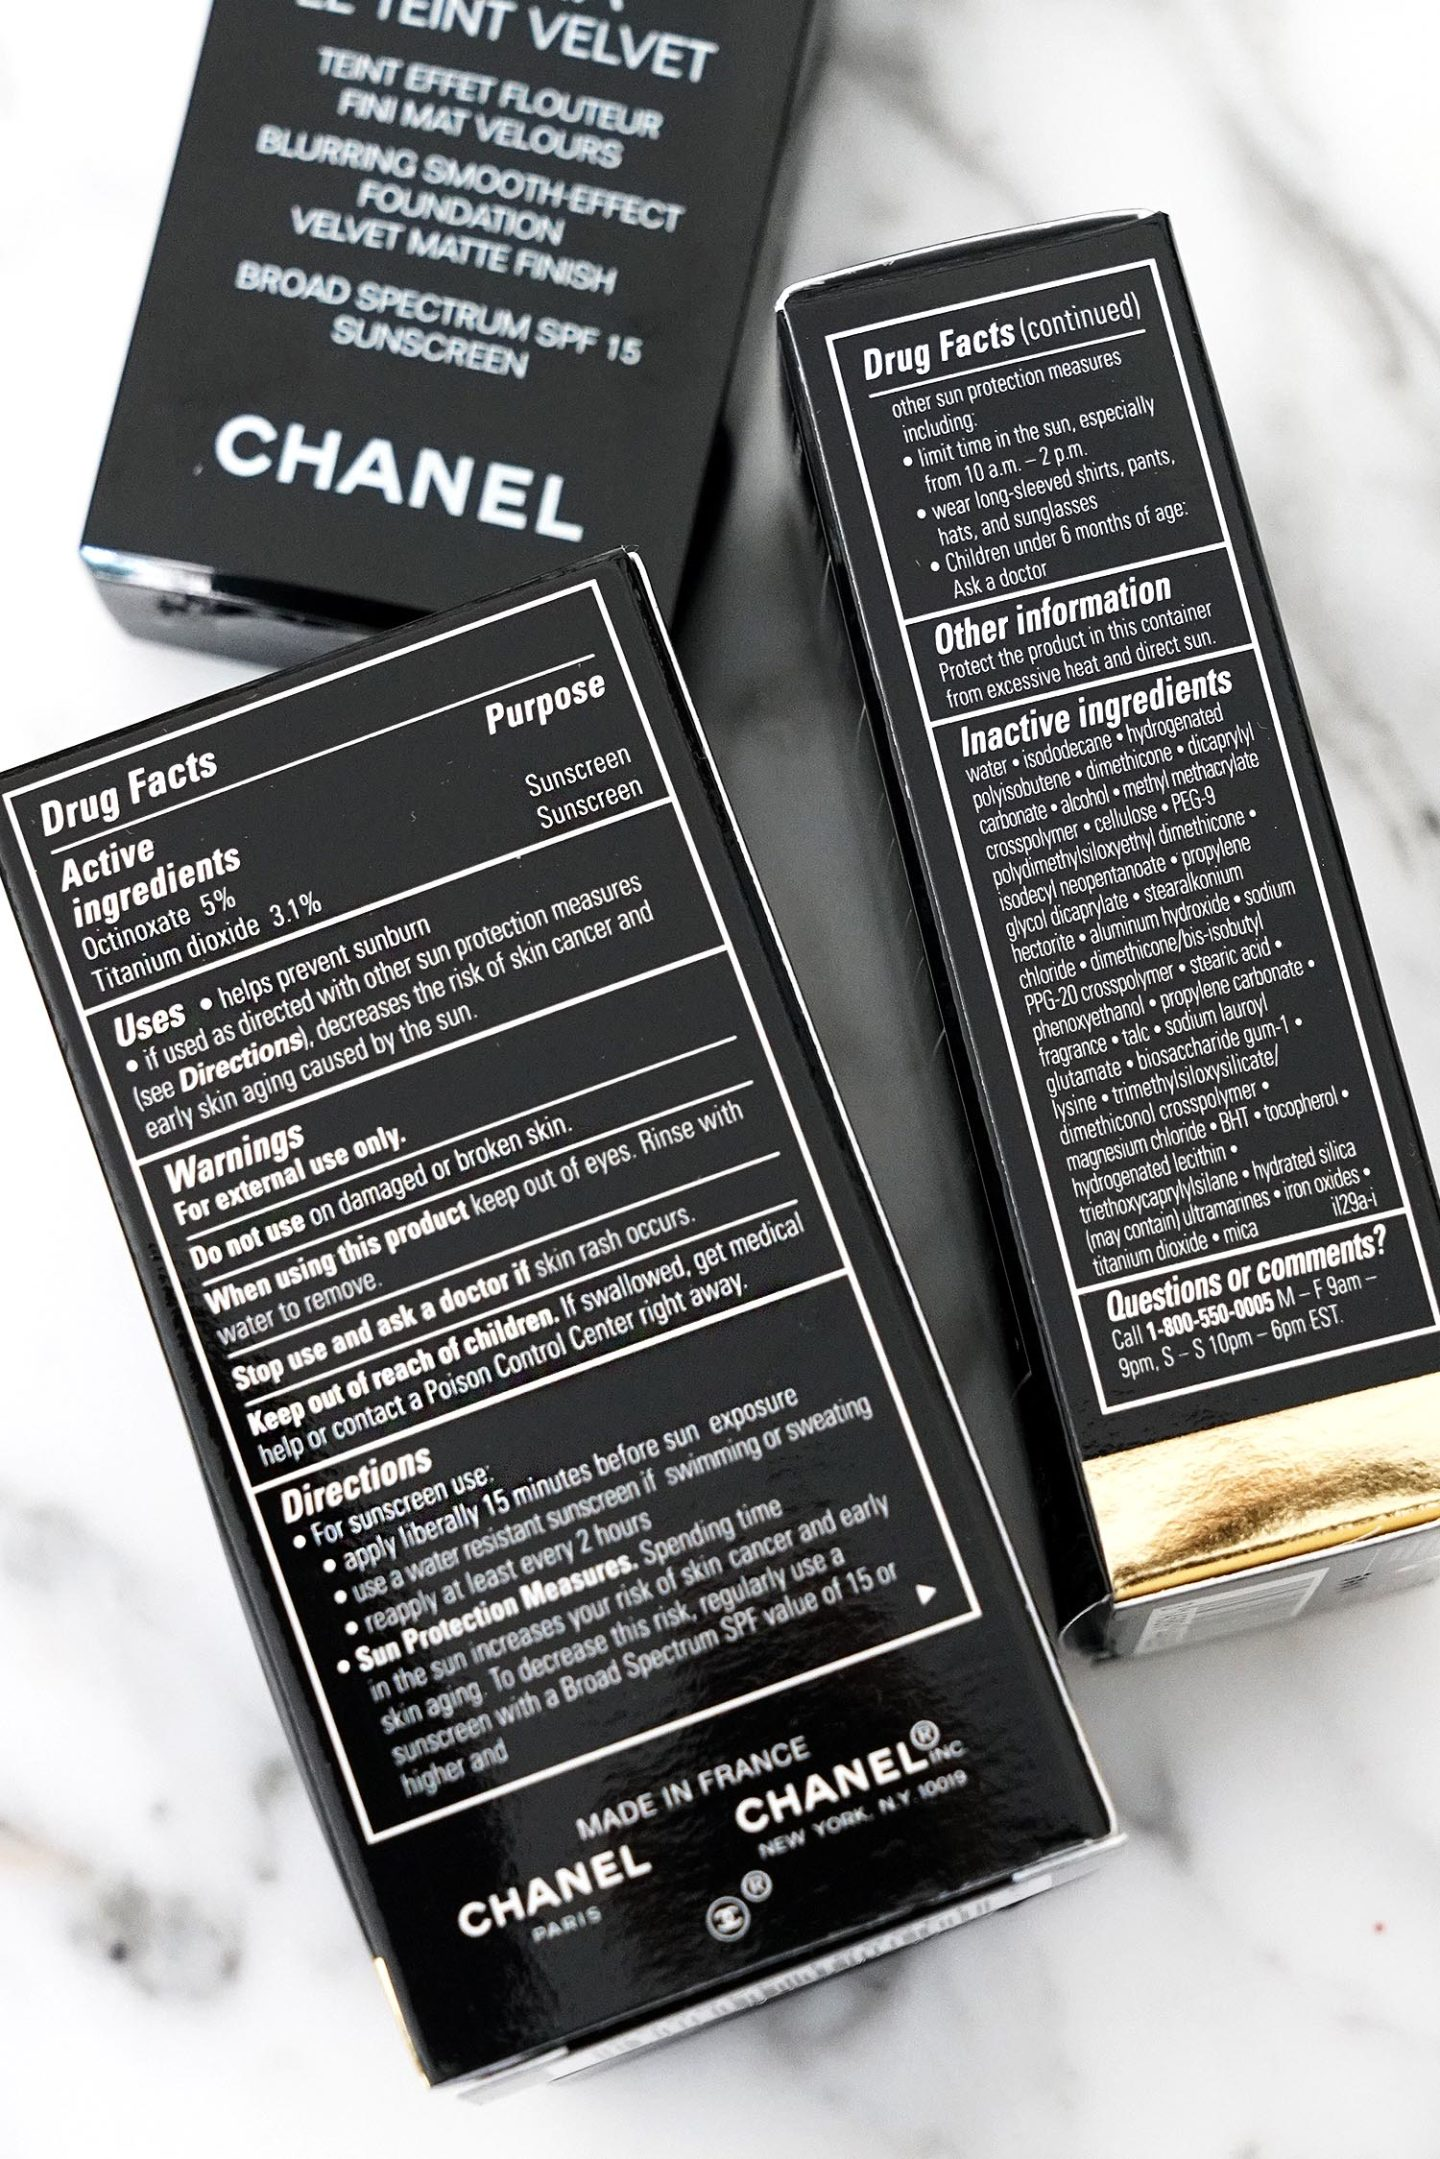 Chanel Ultra Le Teint Velvet ingredients US